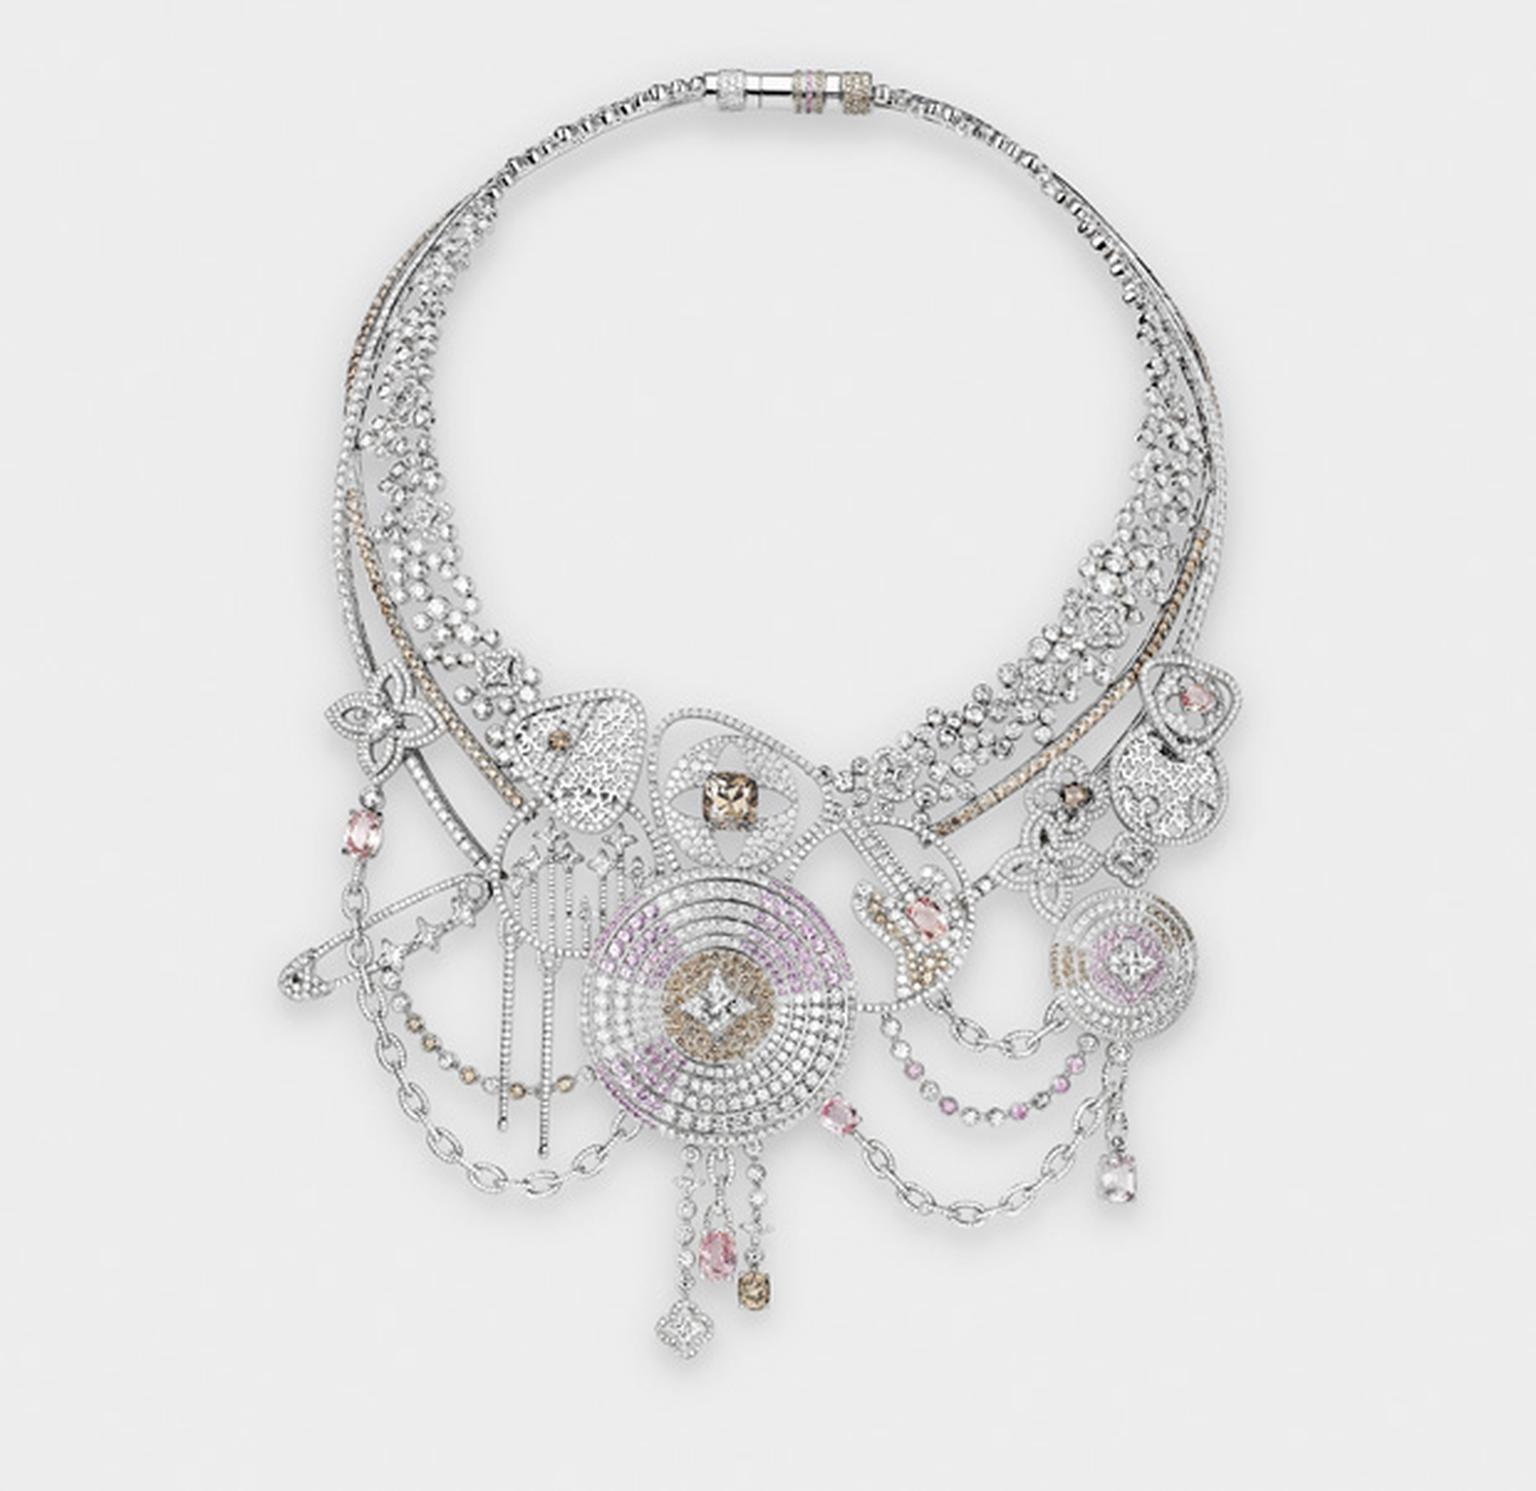 Louis Vuitton L'Ame du Voyage diamond rock-inspired necklace